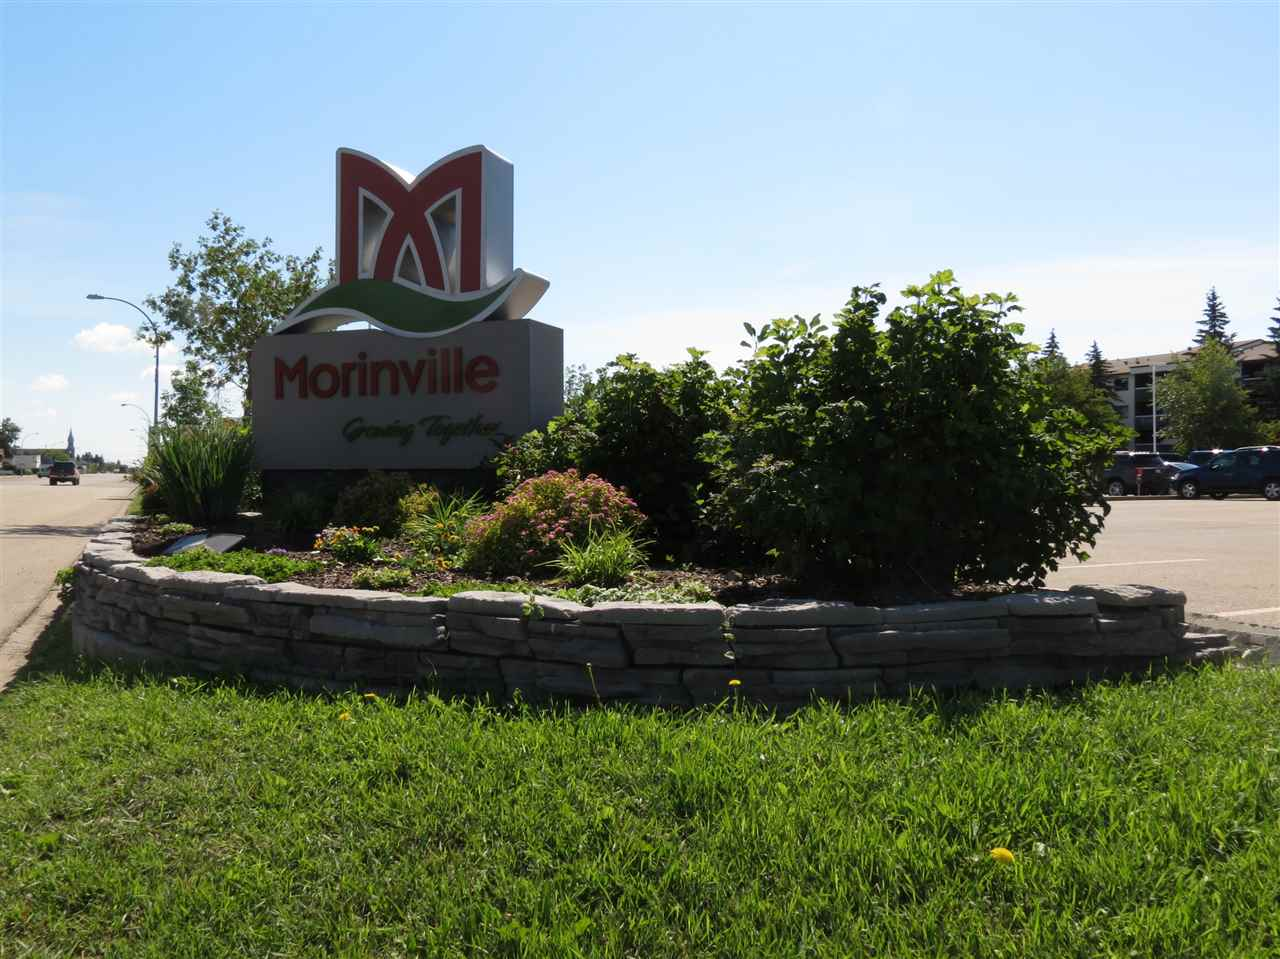 Photo 10: 106 9910 107 Street: Morinville Condo for sale : MLS® # E4073141